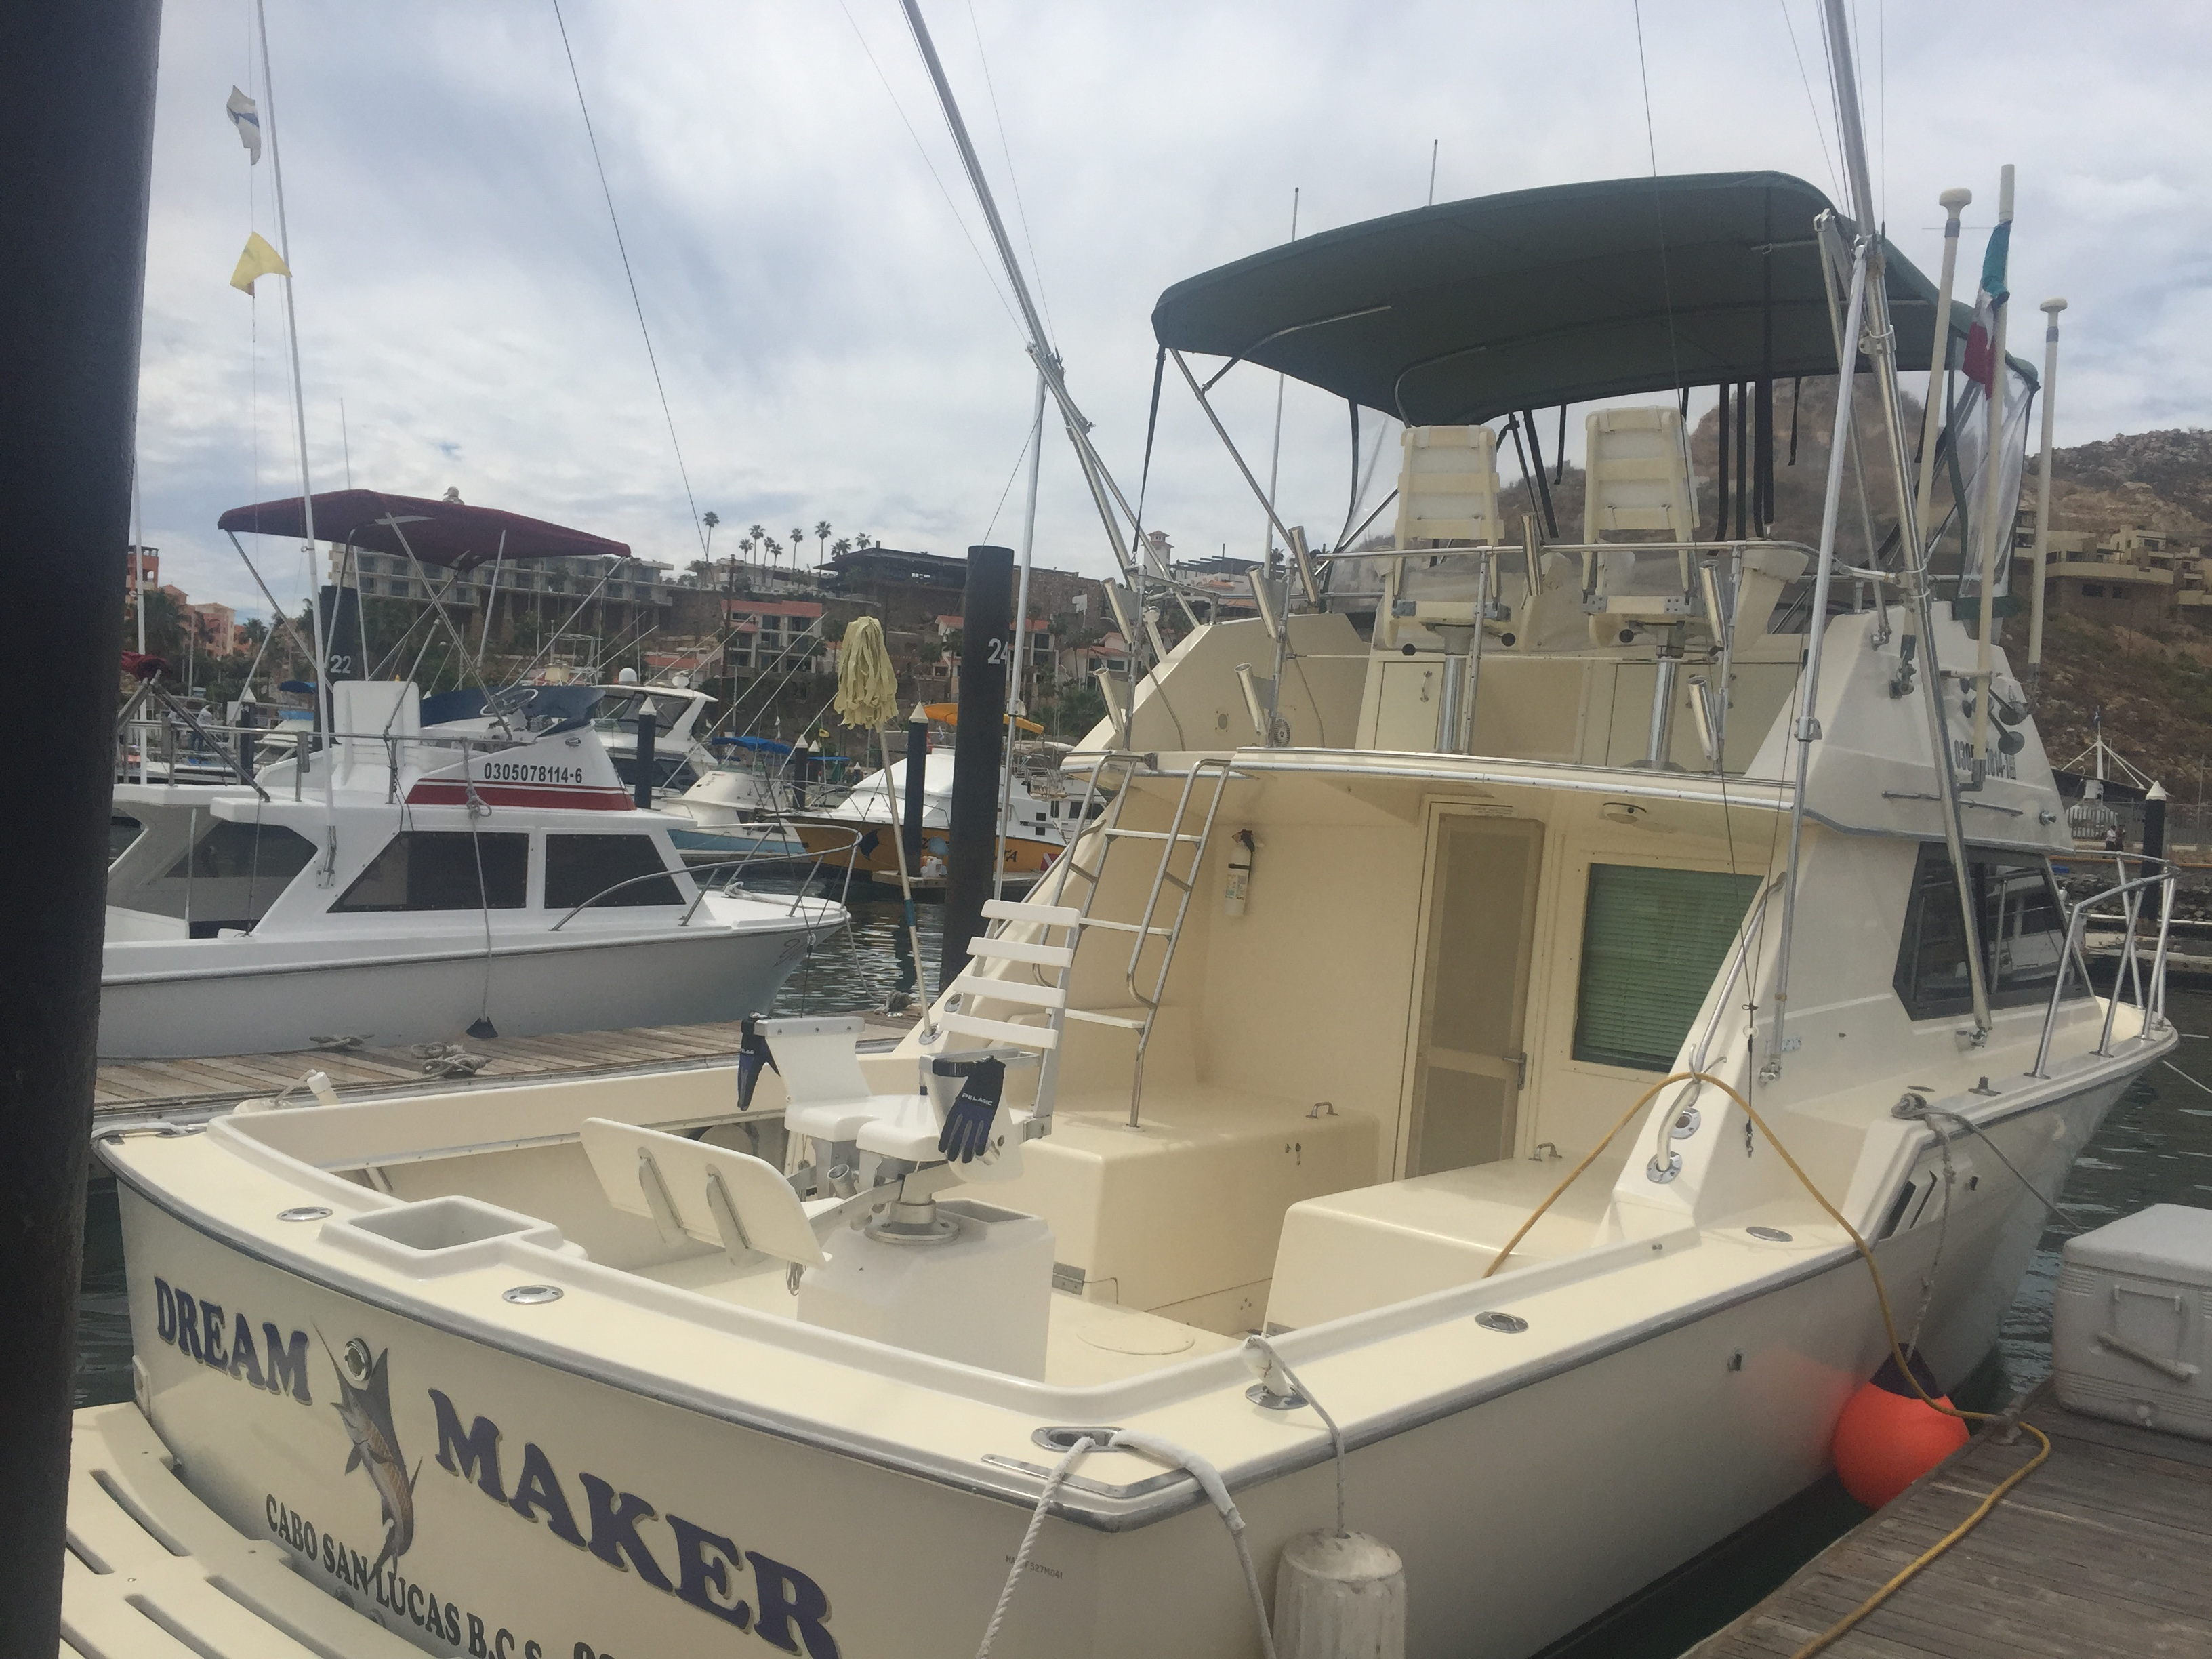 DREAMS MAKER CSL 34 FT.